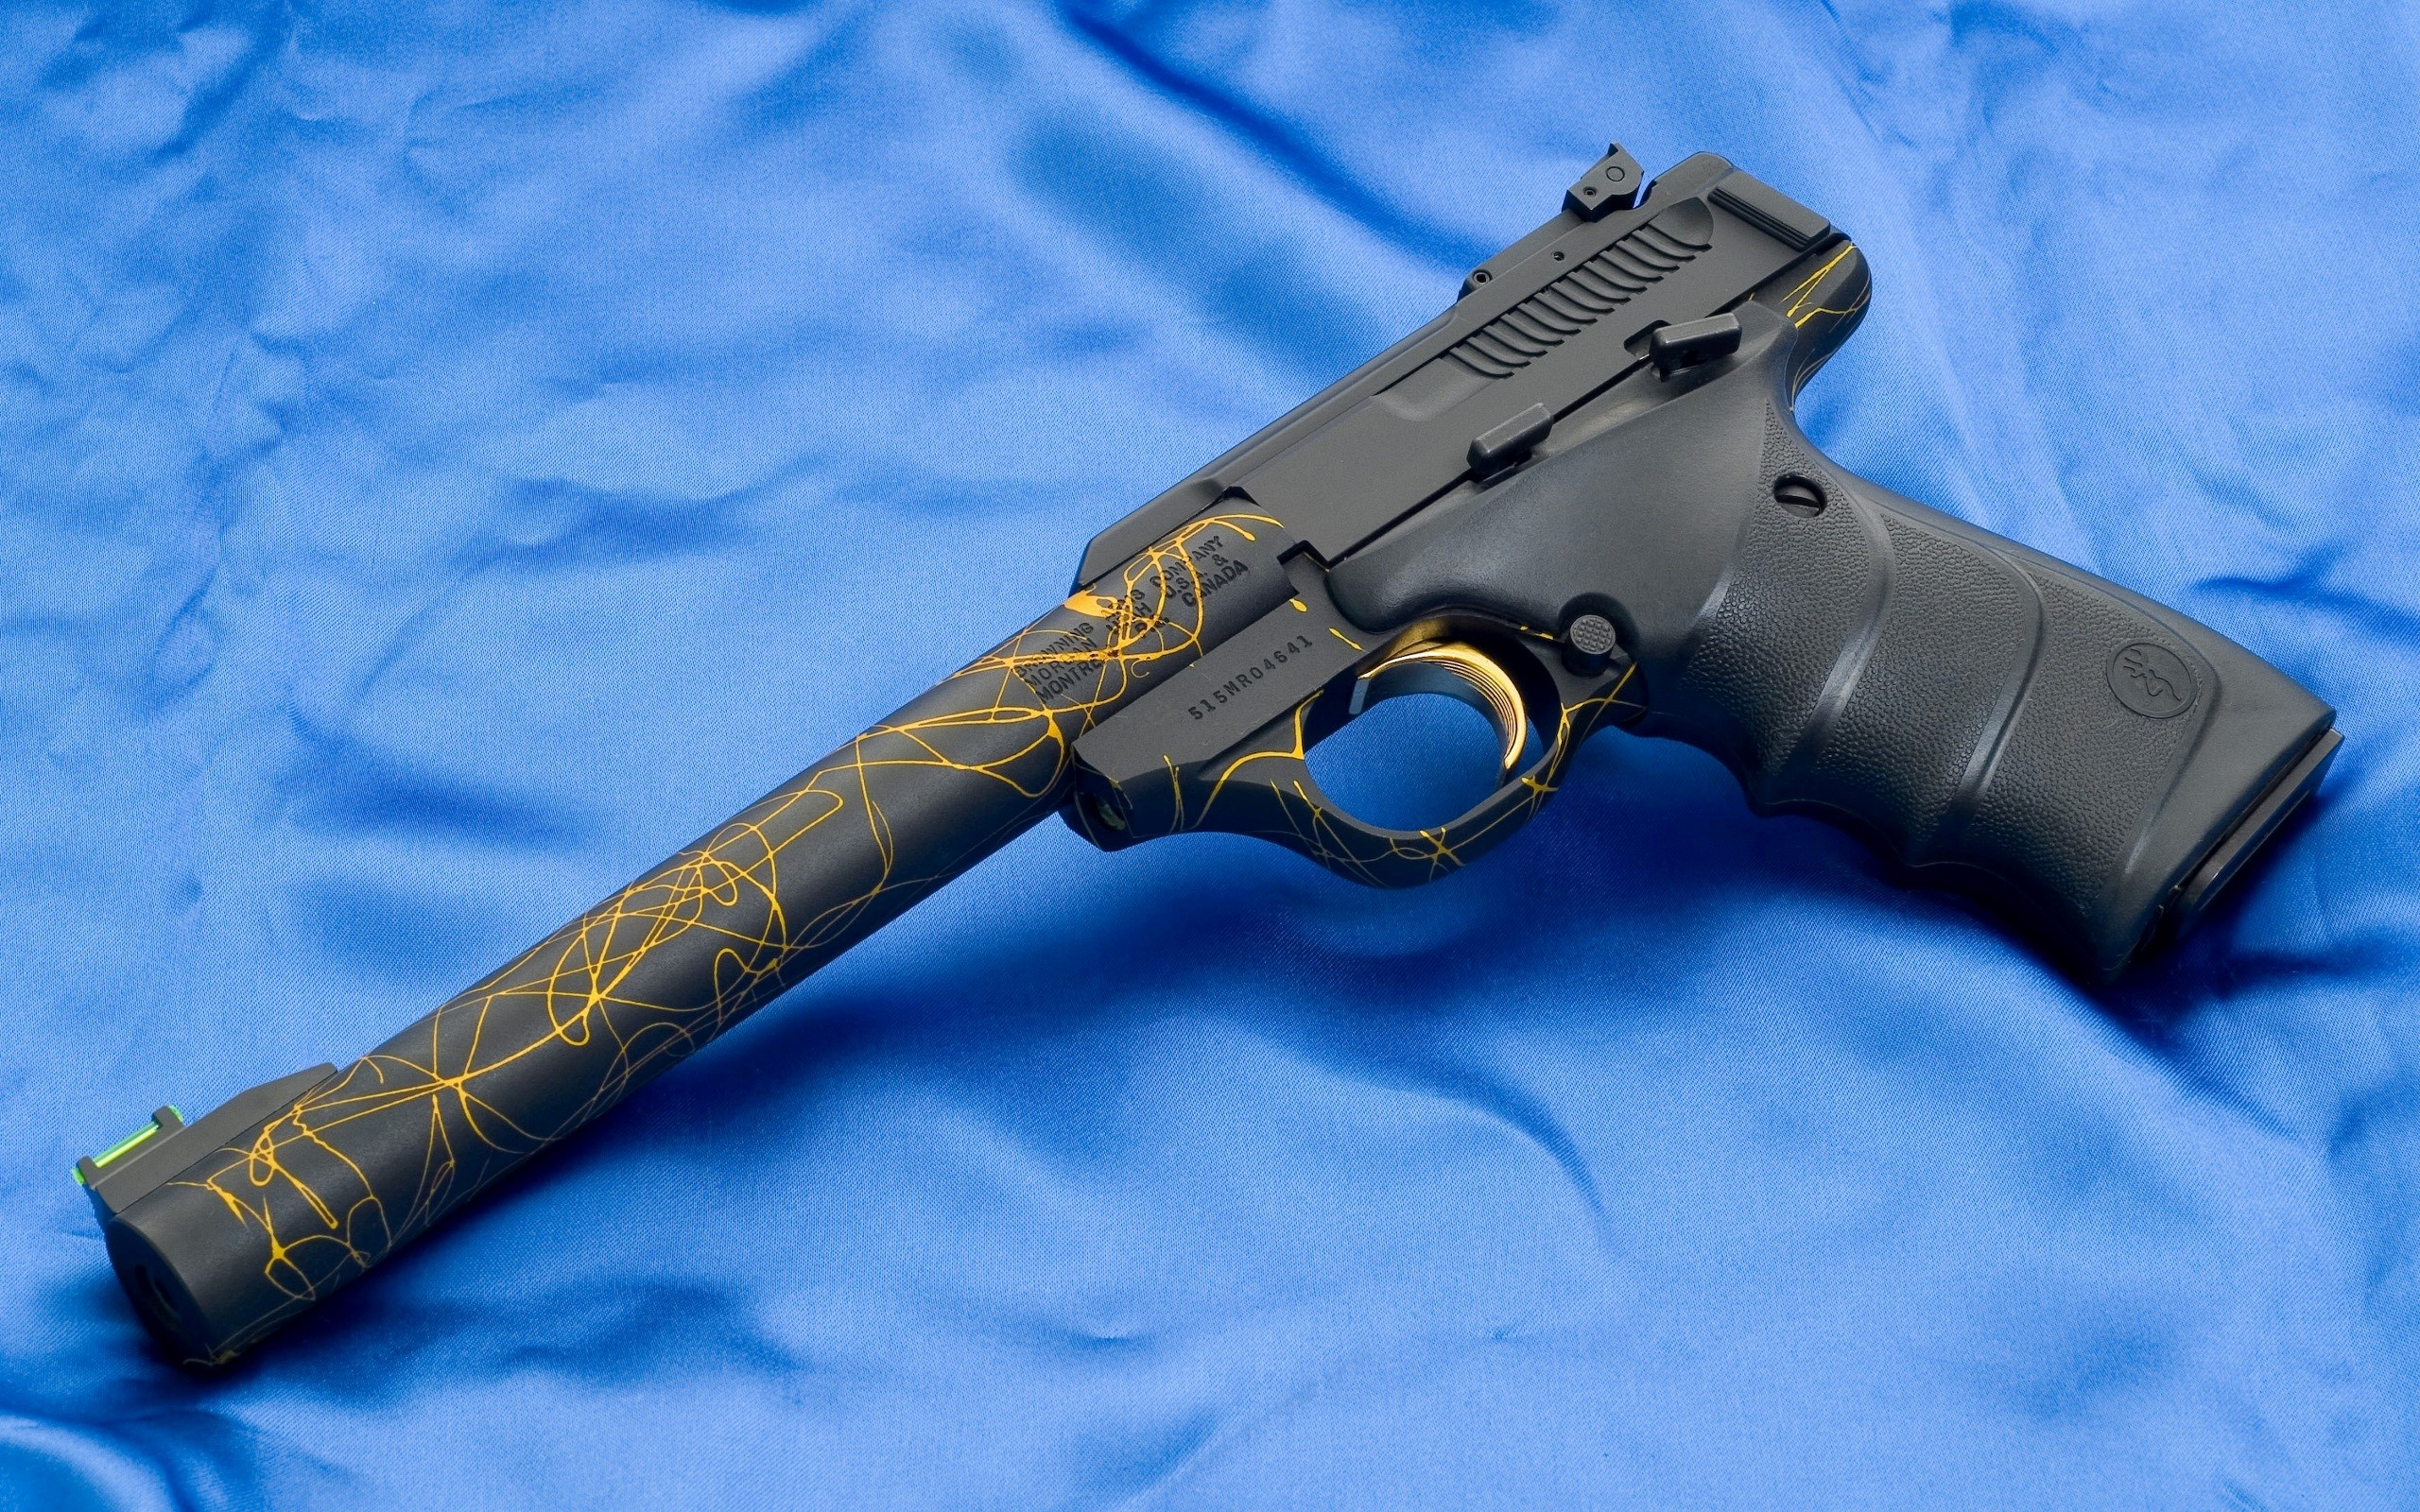 Weapon Browning Buckmark Gun HD Images HD Wallpapers 2560x1600